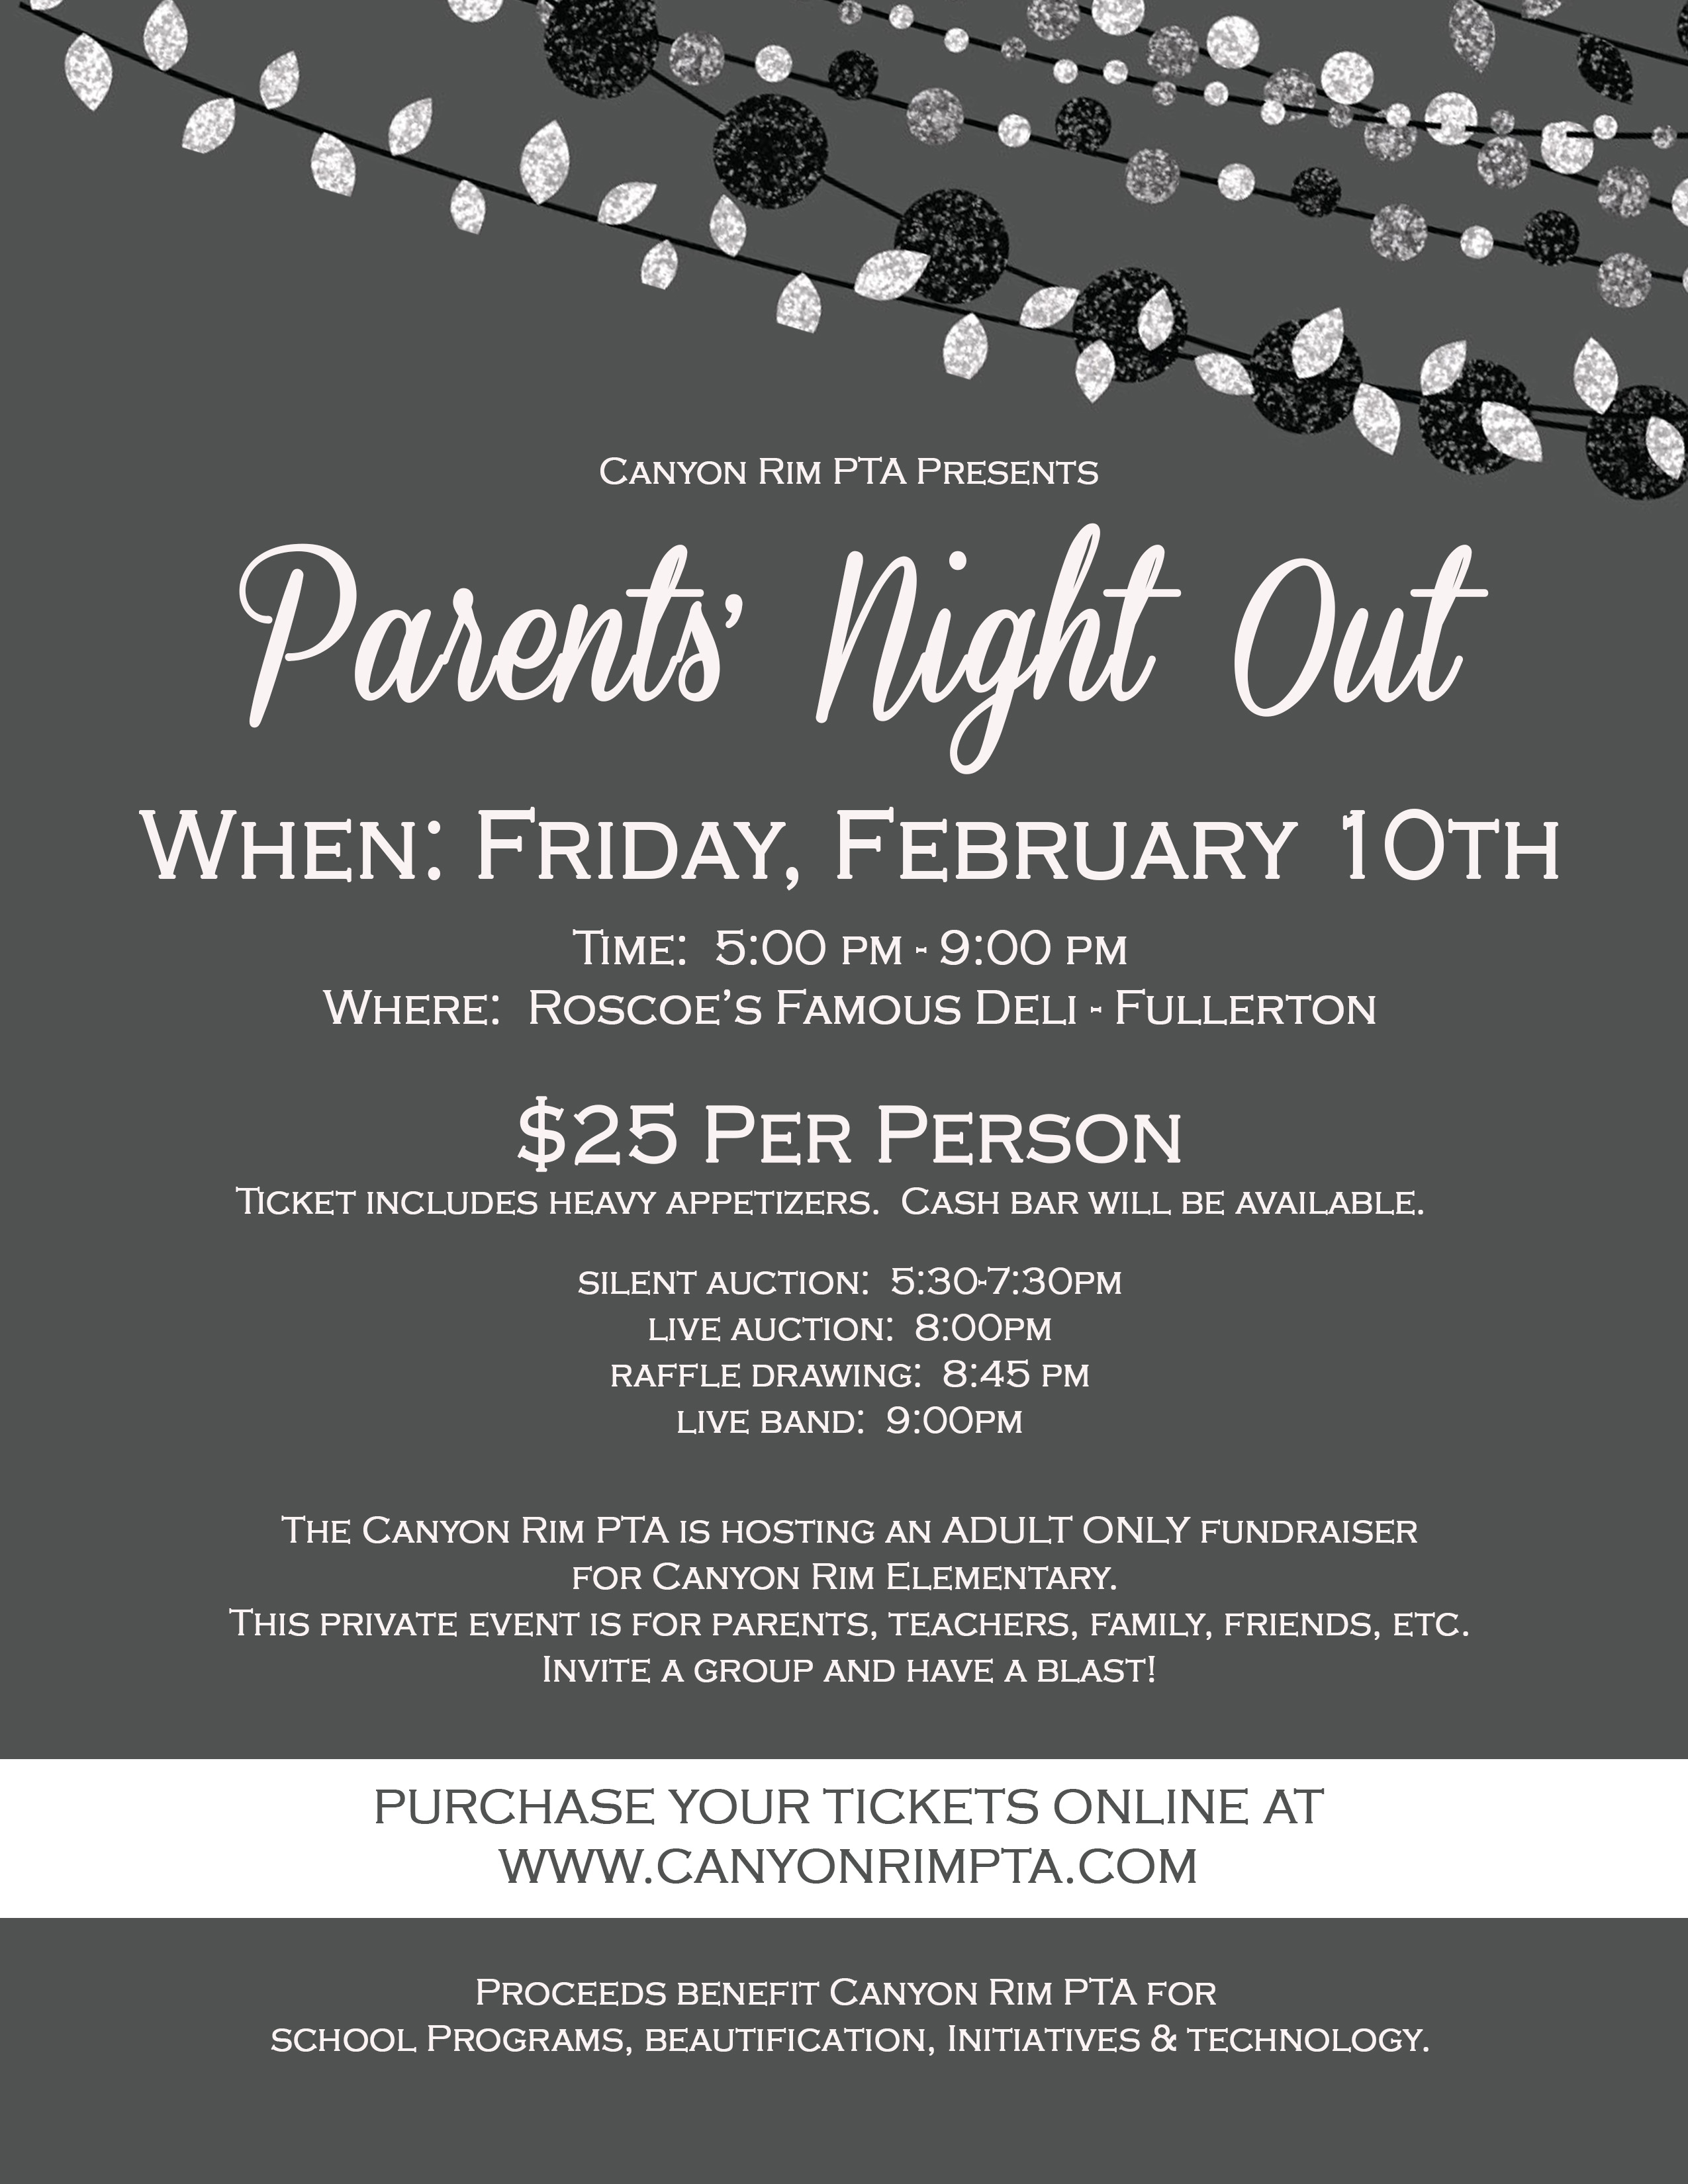 Parents' Night Out » Canyon Rim Elementary PTA